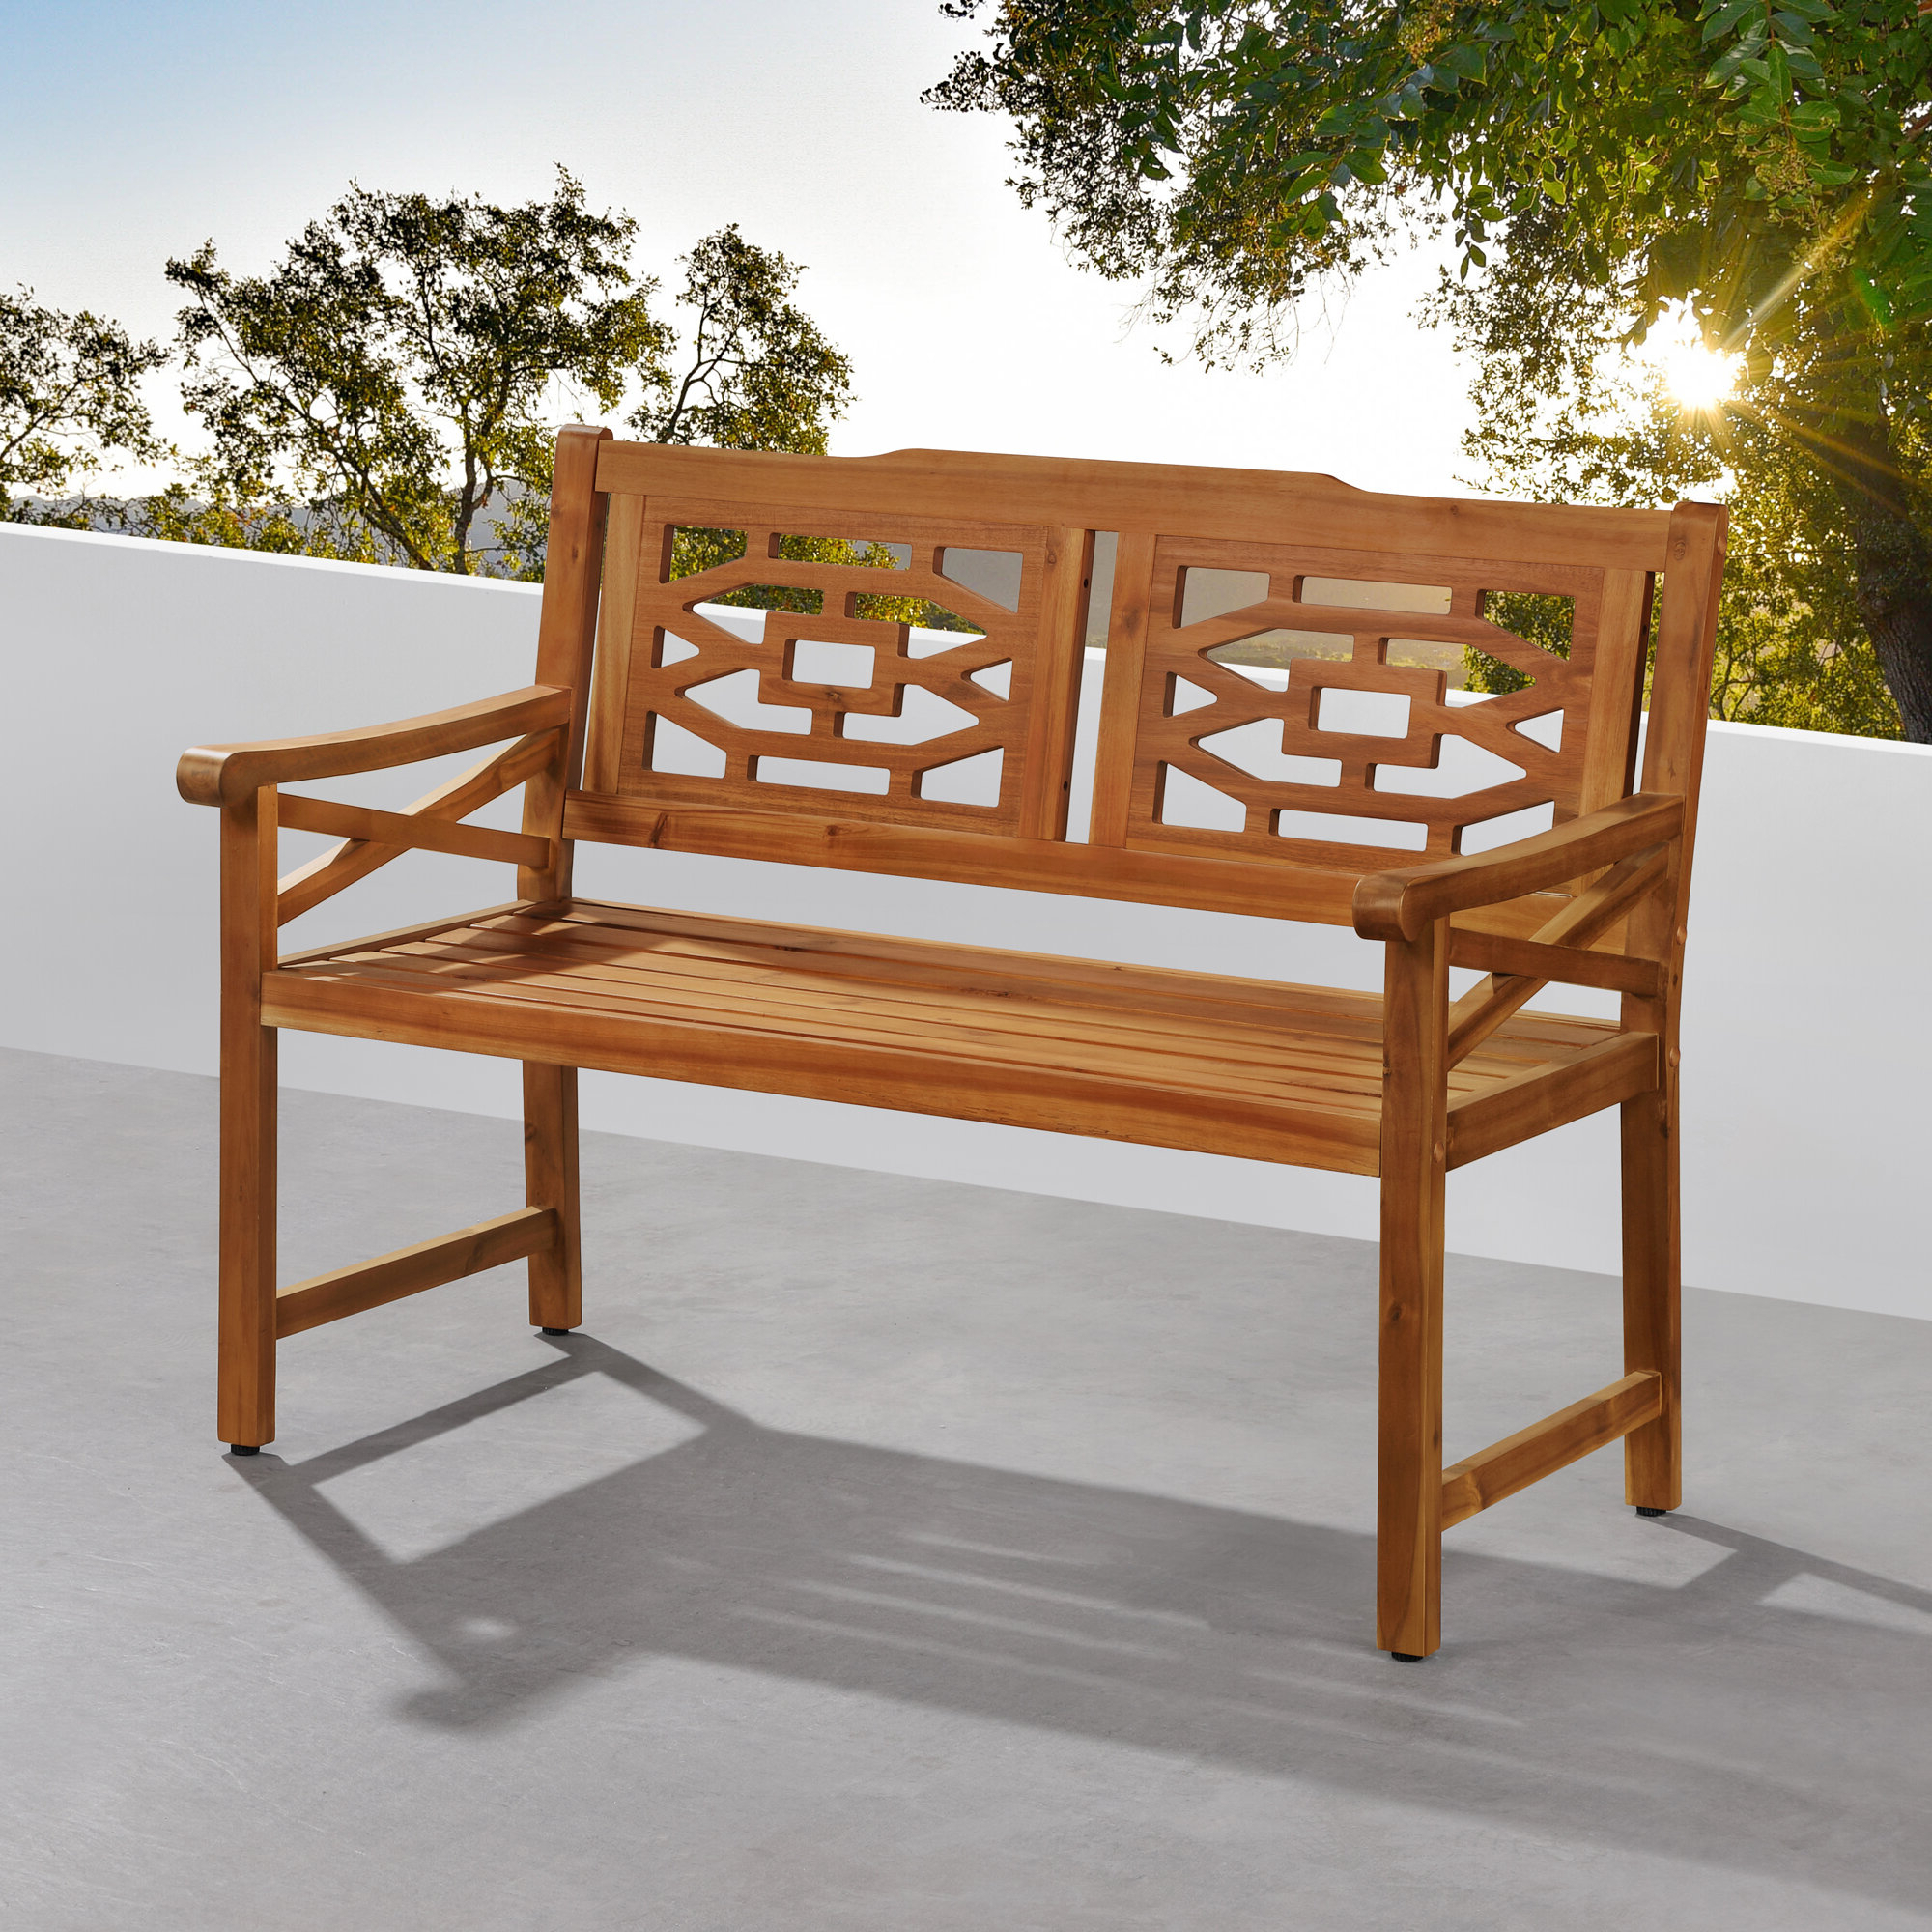 Malay Wooden Garden Bench Pertaining To Most Popular Amabel Patio Diamond Wooden Garden Benches (View 13 of 30)